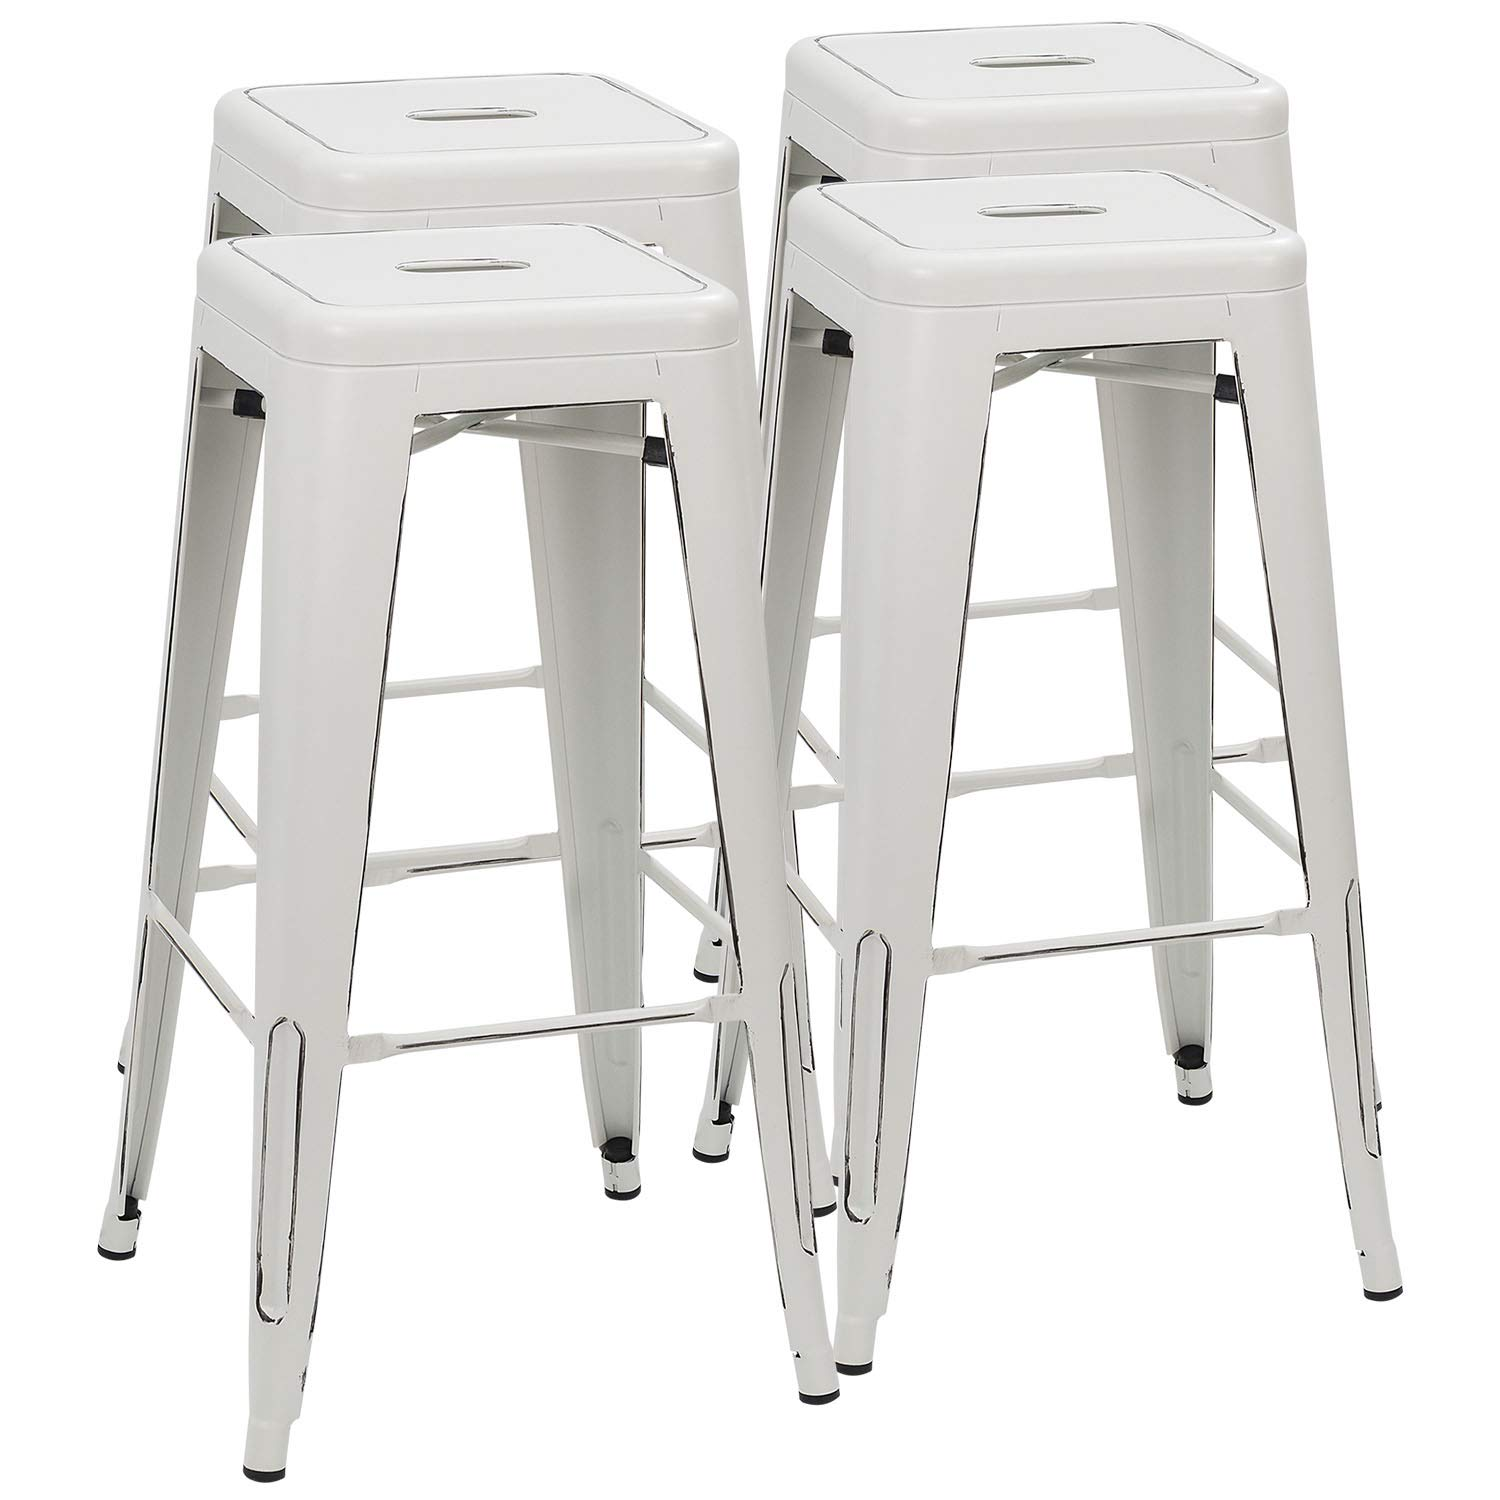 Furmax 30 Inches Metal Bar Stools High Backless Stools Indoor-Outdoor Stackable Stools Set of 4 (Distressed White) by Furmax